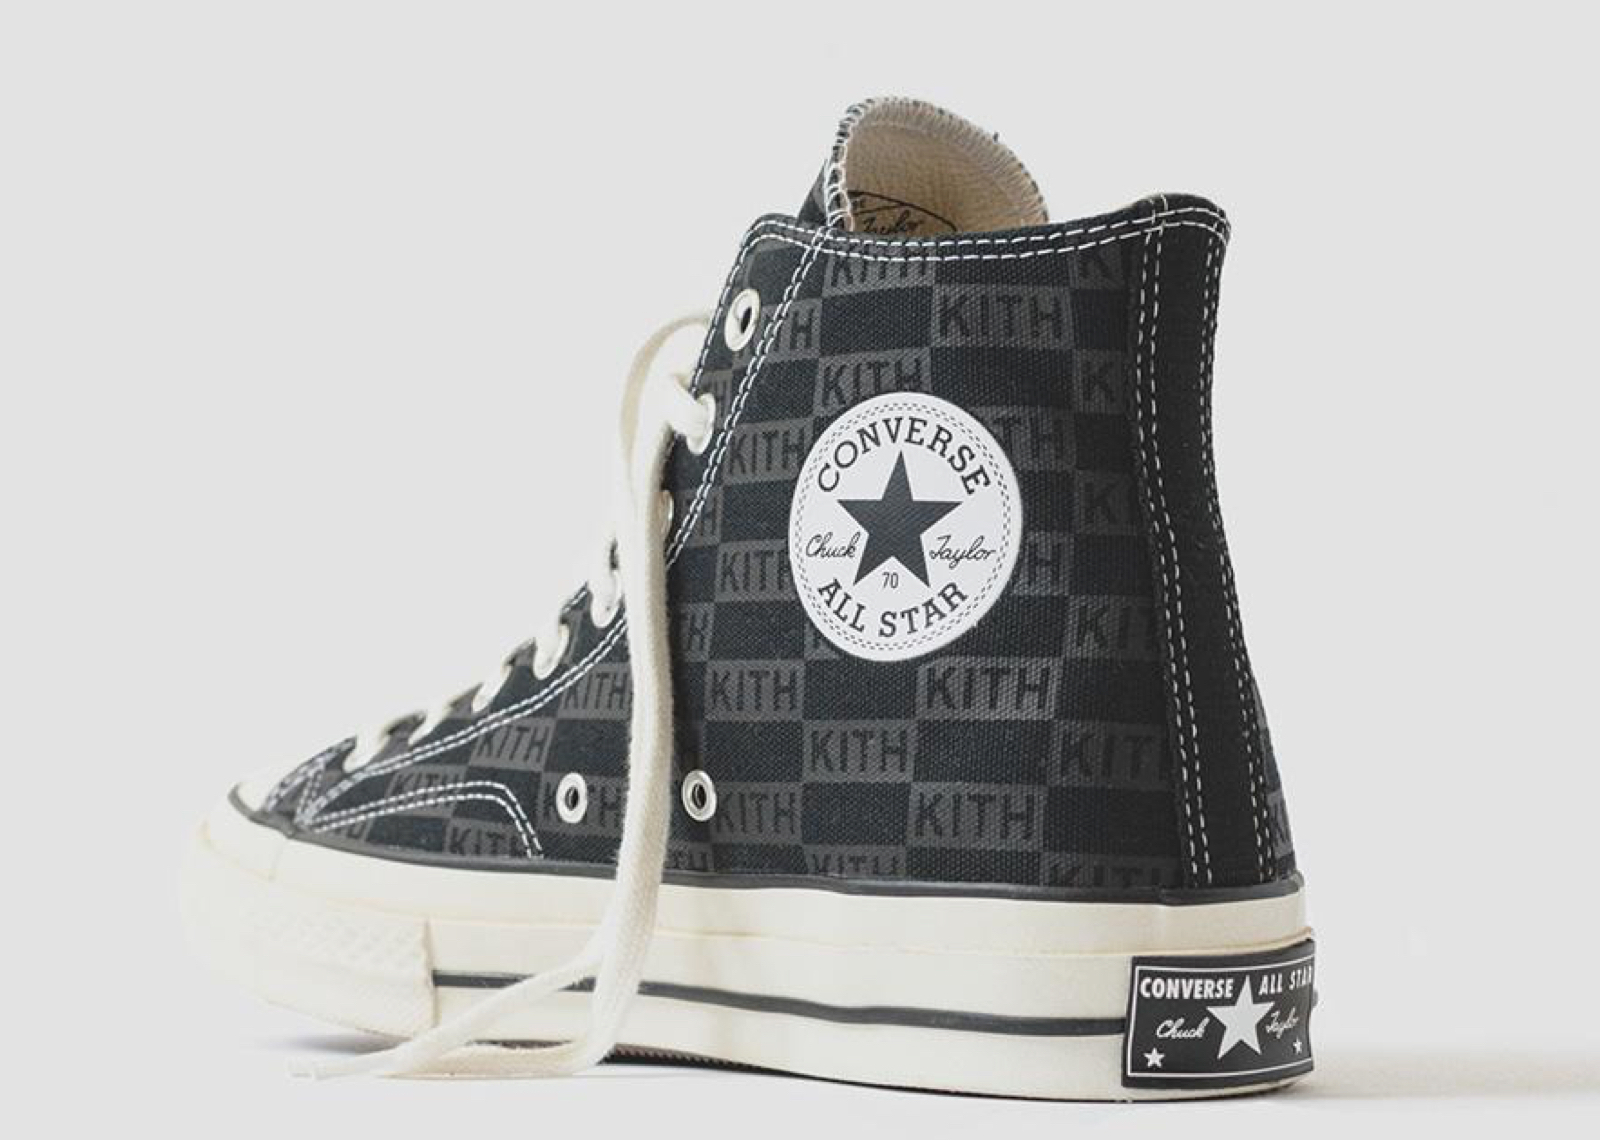 0a6dc63bf23 Kick Avenue - Authentic Sneakers